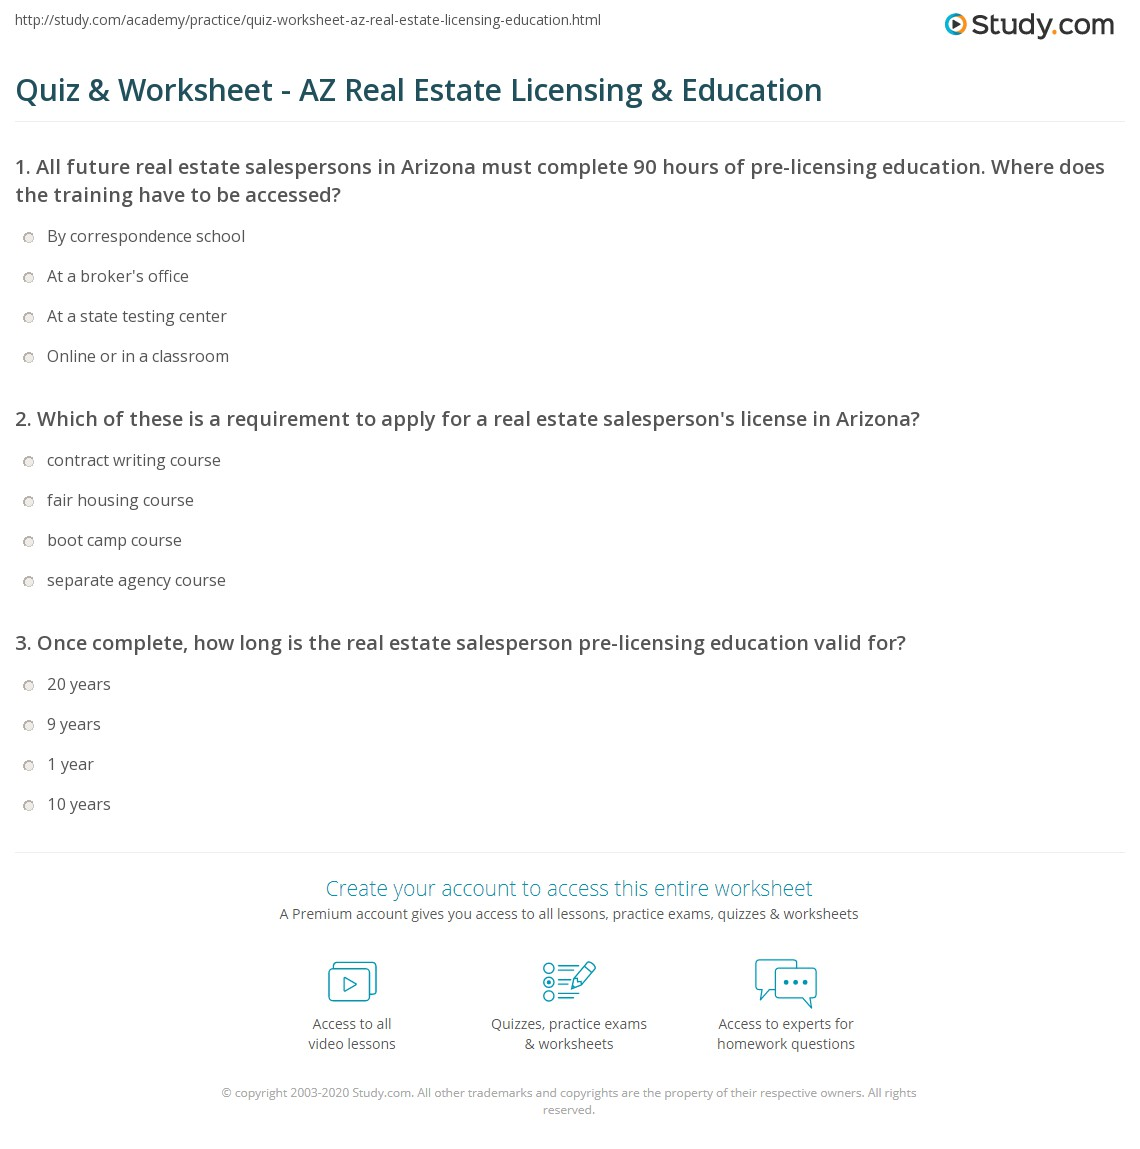 Quiz Worksheet Az Real Estate Licensing Education Studycom